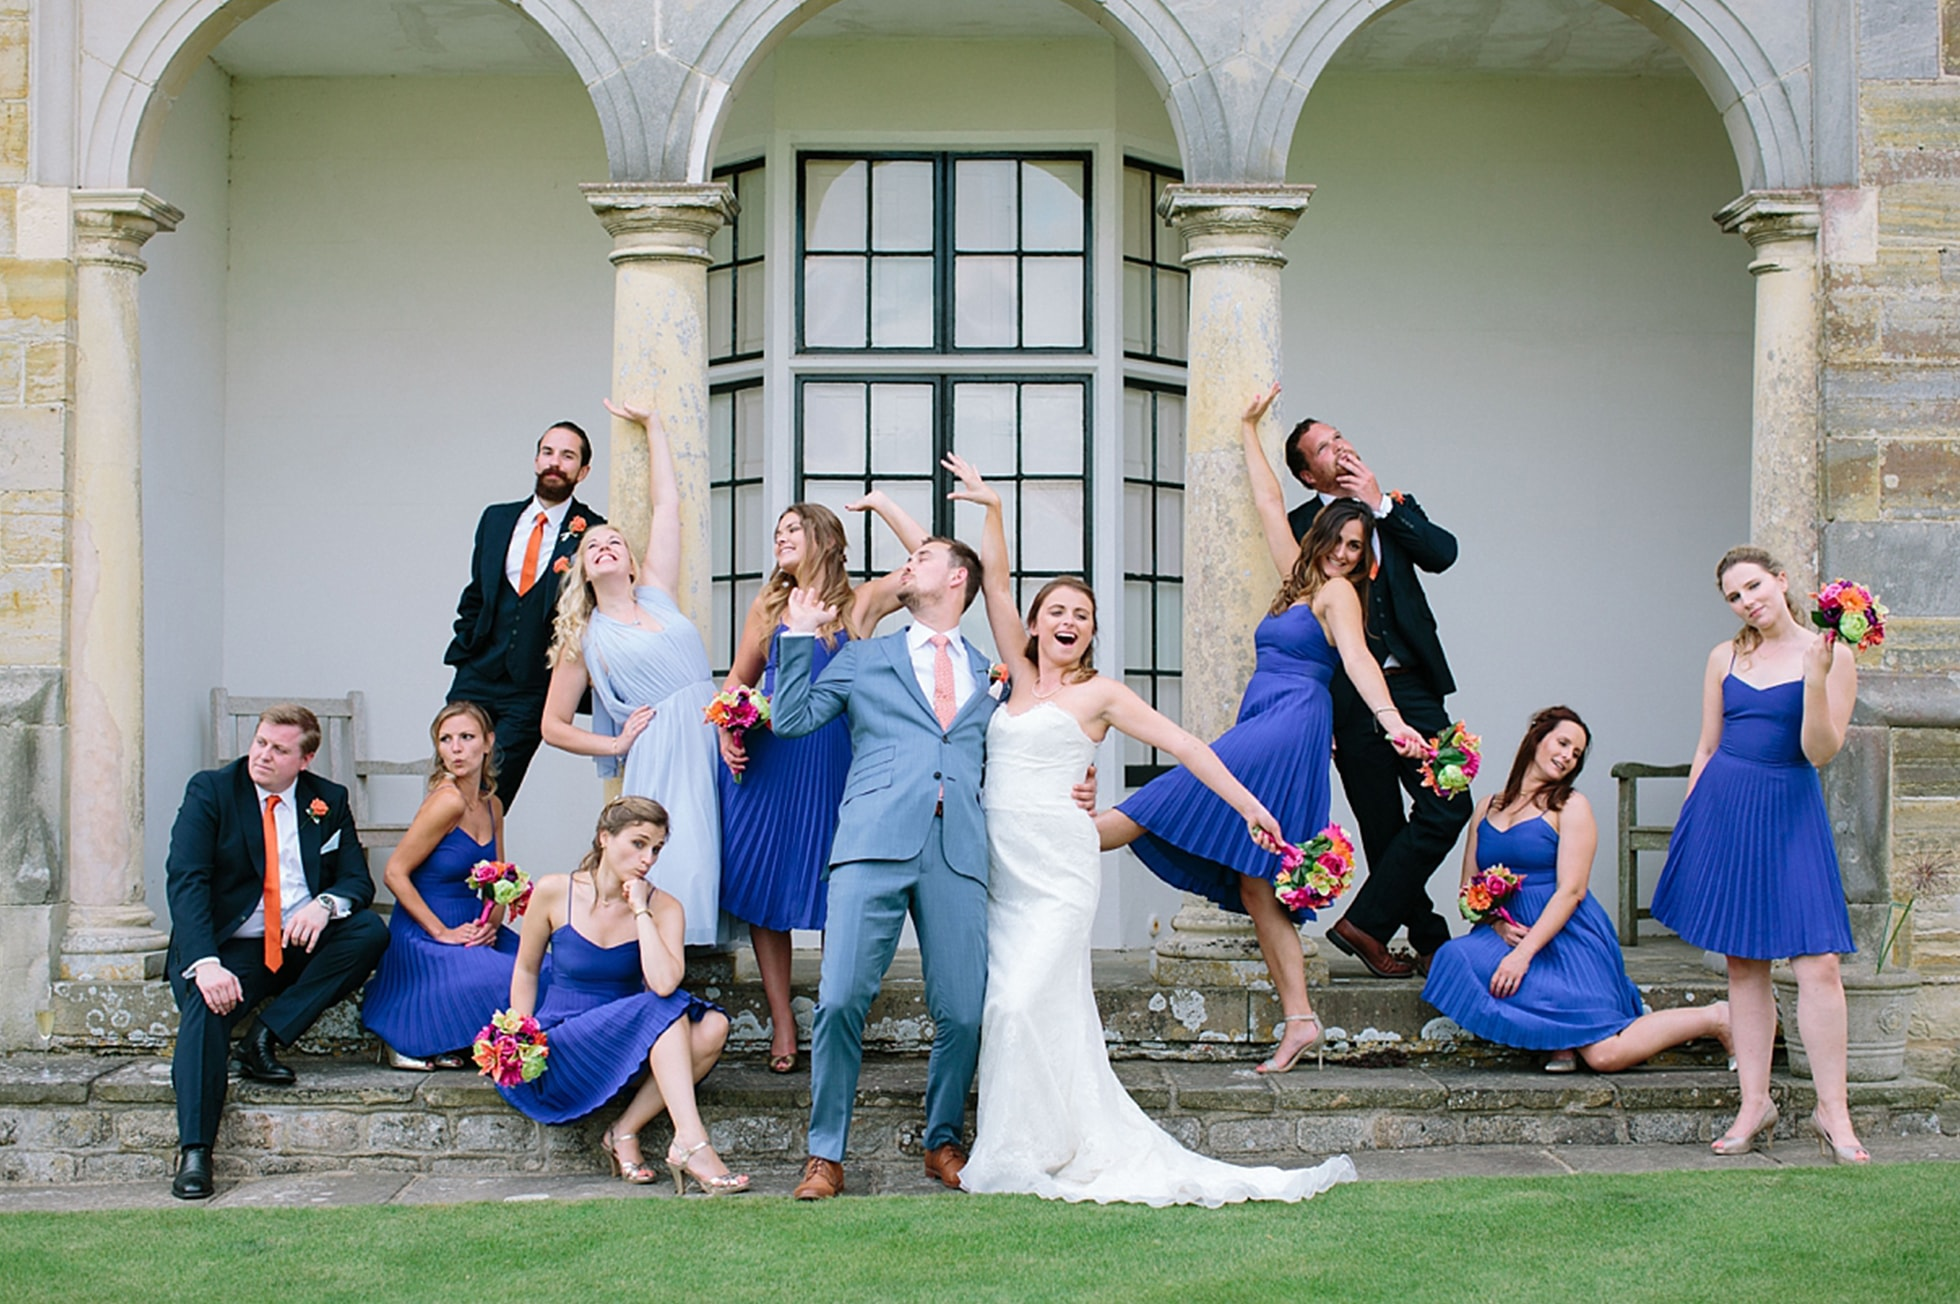 Group photo of wedding party